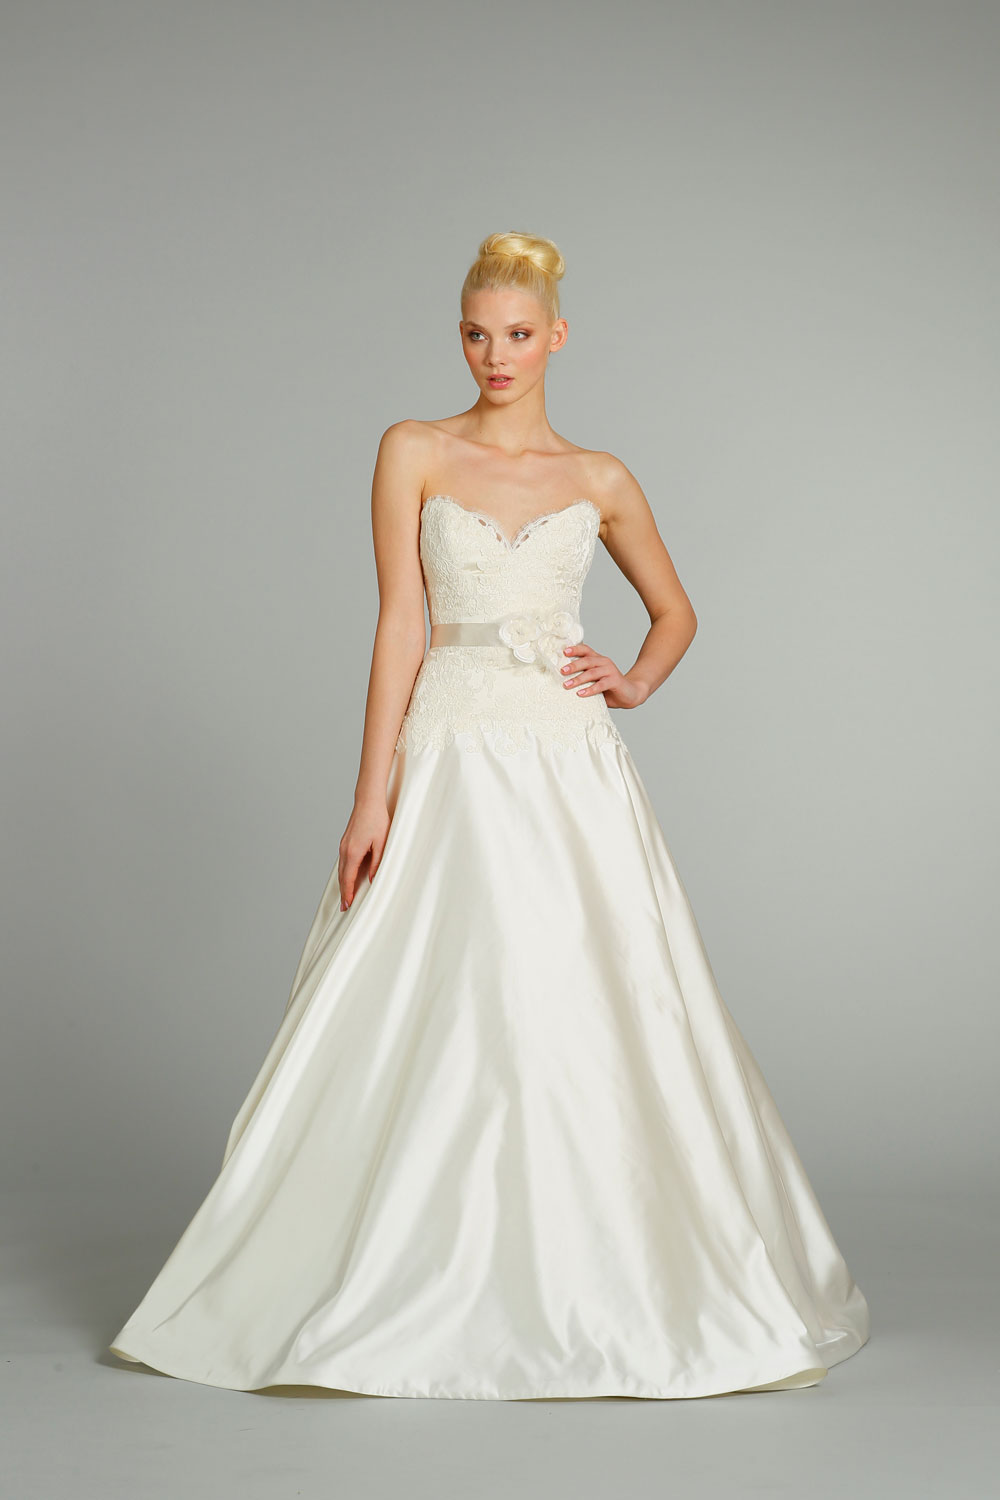 Fall 2012 wedding dress jim hjelm bridal gowns 8260 for Jim hjelm wedding dresses